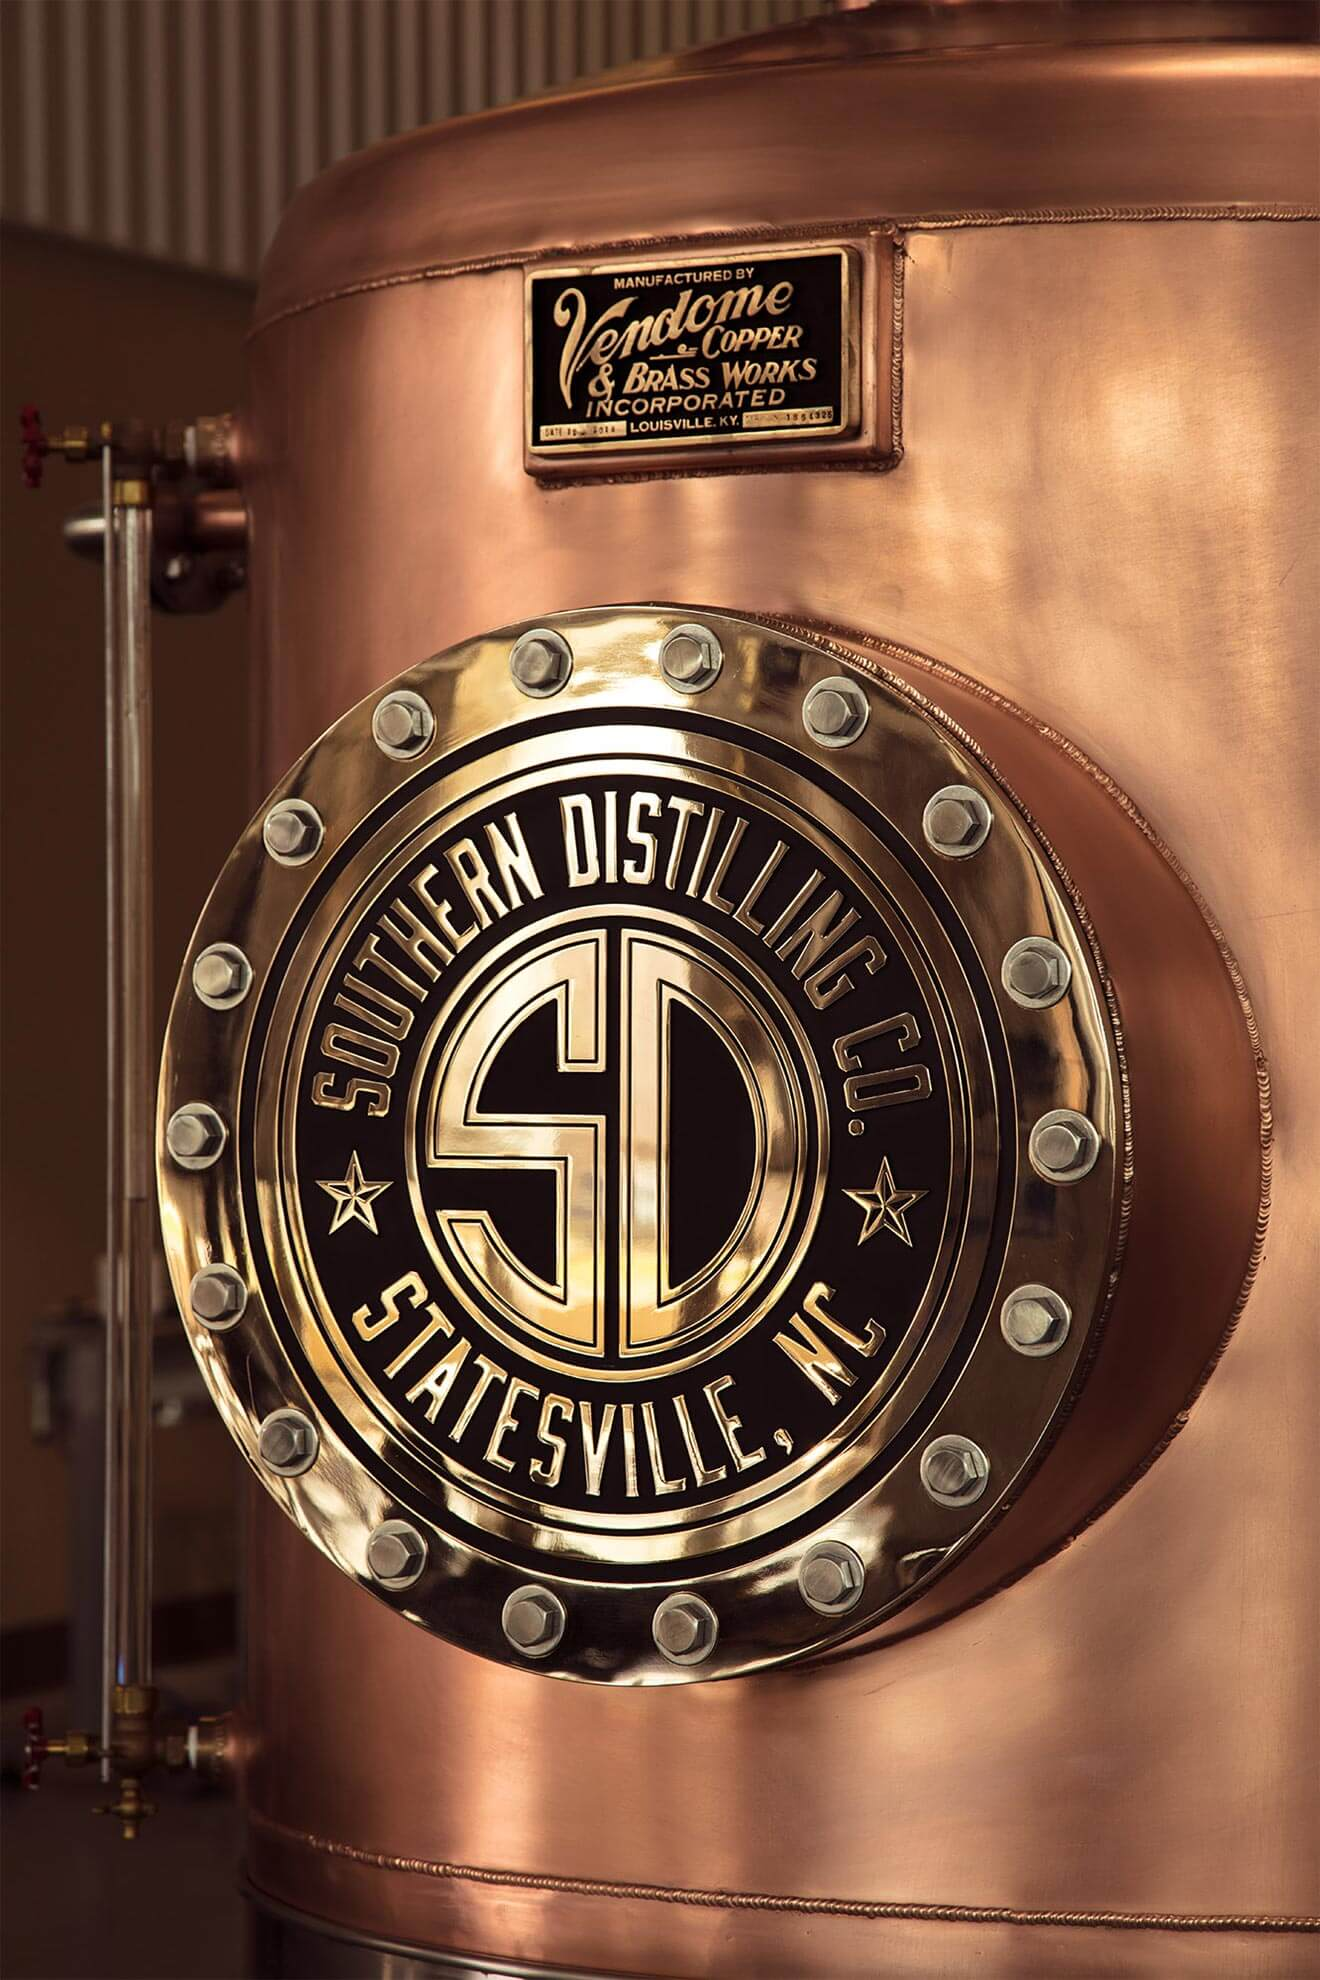 Southern Distilling Company Copper Doubler